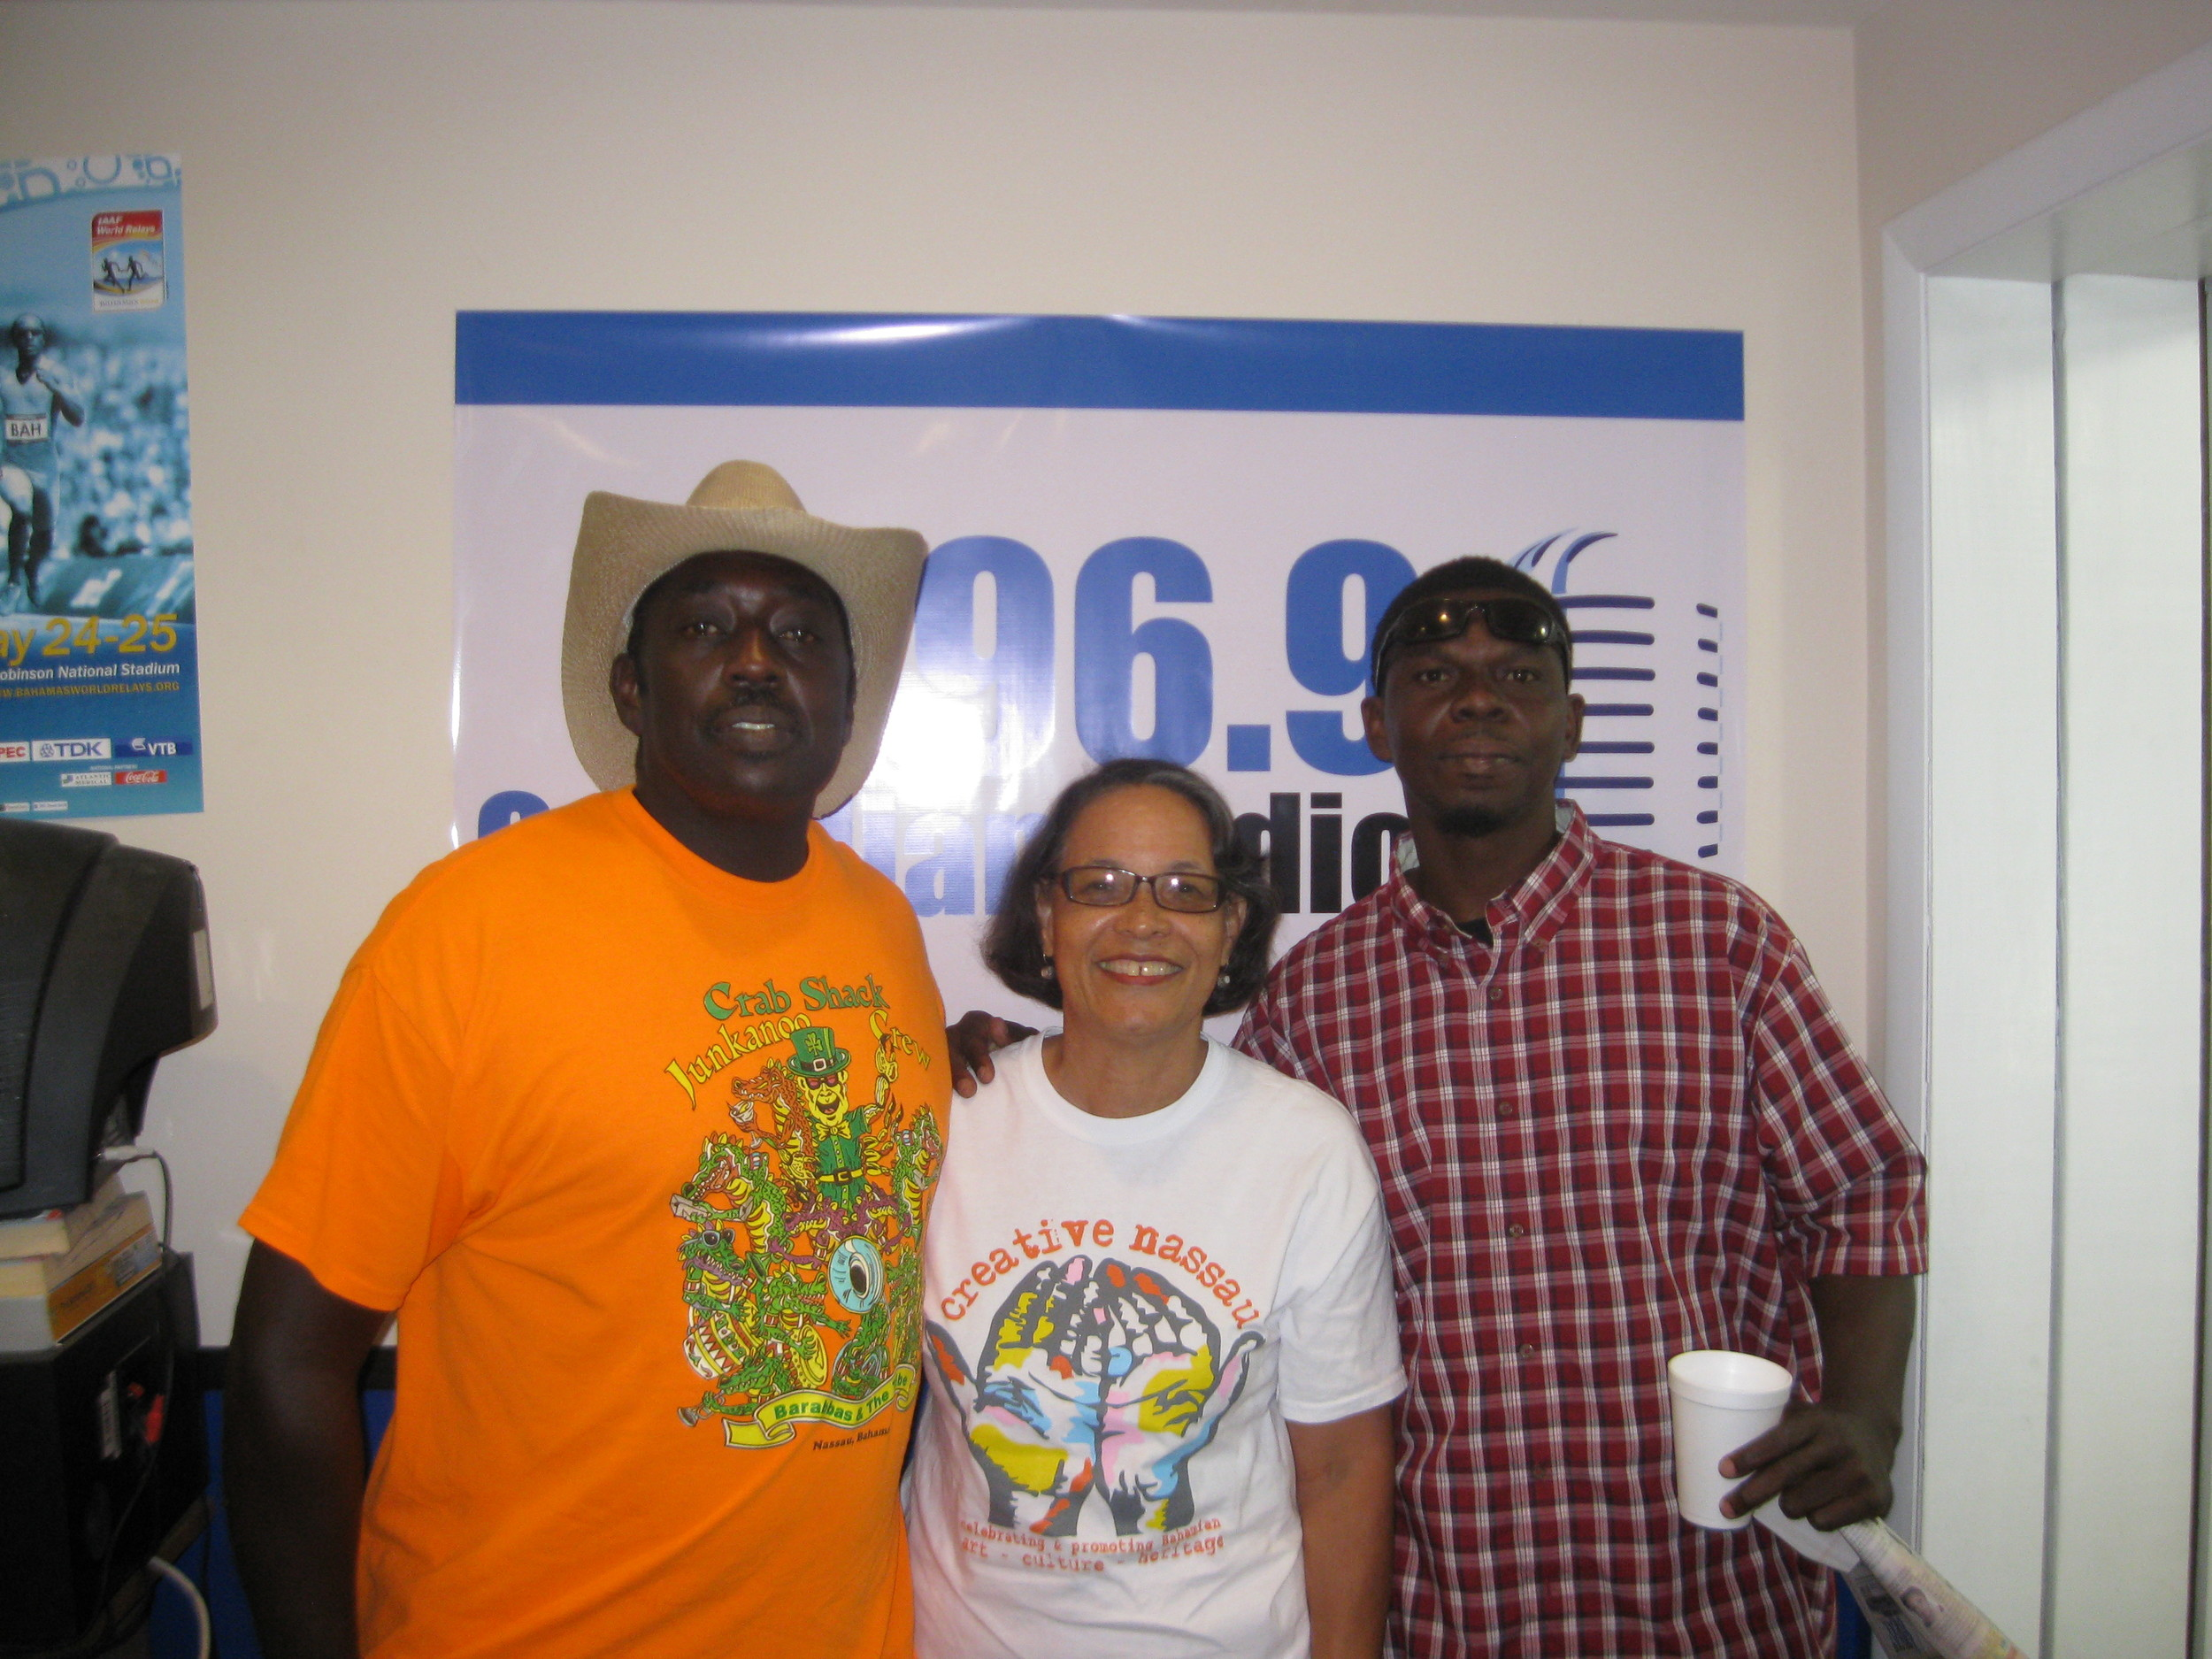 Barabbas, Pam and Scrooge after the recent radio show